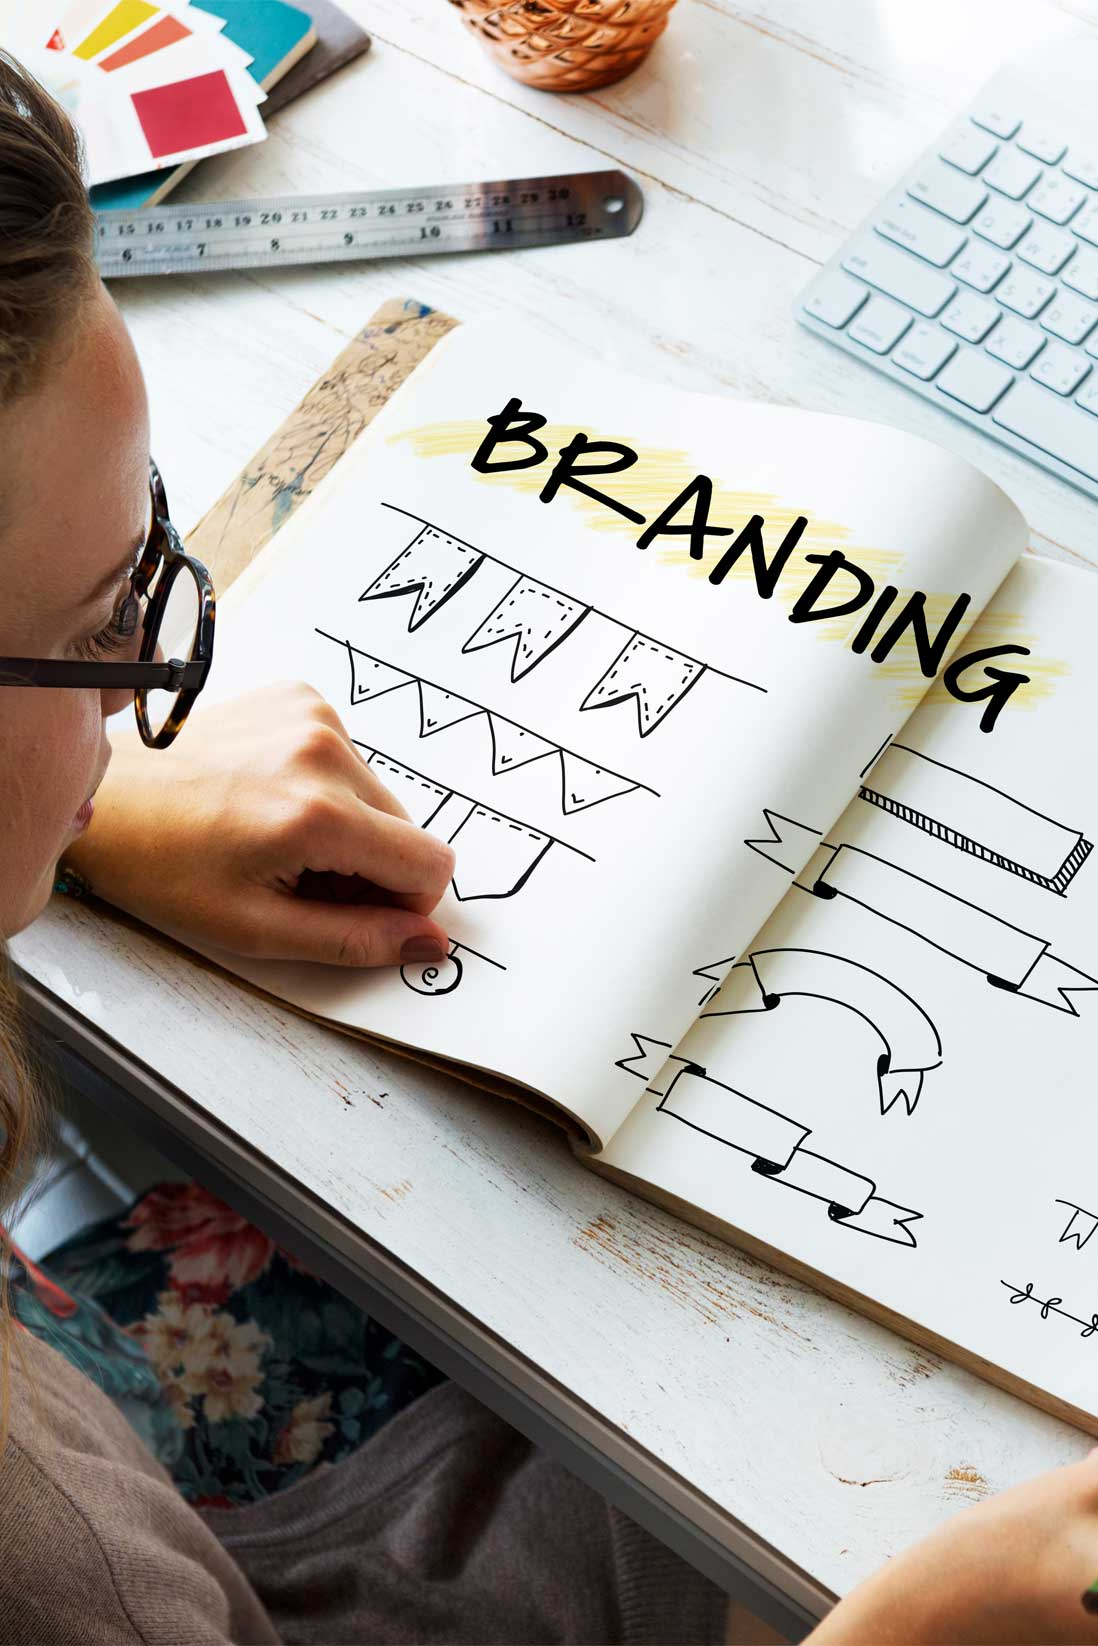 Image of a woman looking a different styles of branding sketches